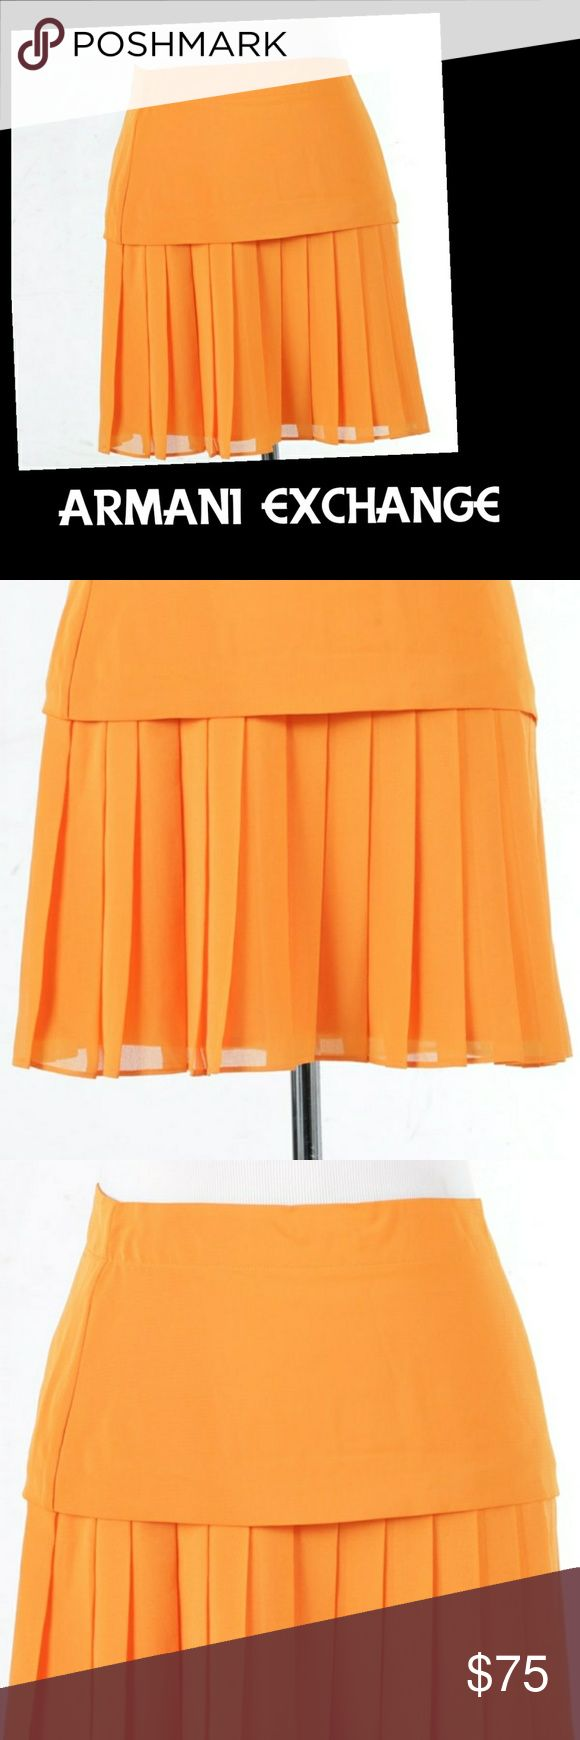 Armani Exchange Orange Skirt This size 2 pleated Armani Exchange skirt is, light, flirty, and perfect for summer.   Item is in good used condition.  Photos are of the item being sold. Armani Exchange Skirts Mini